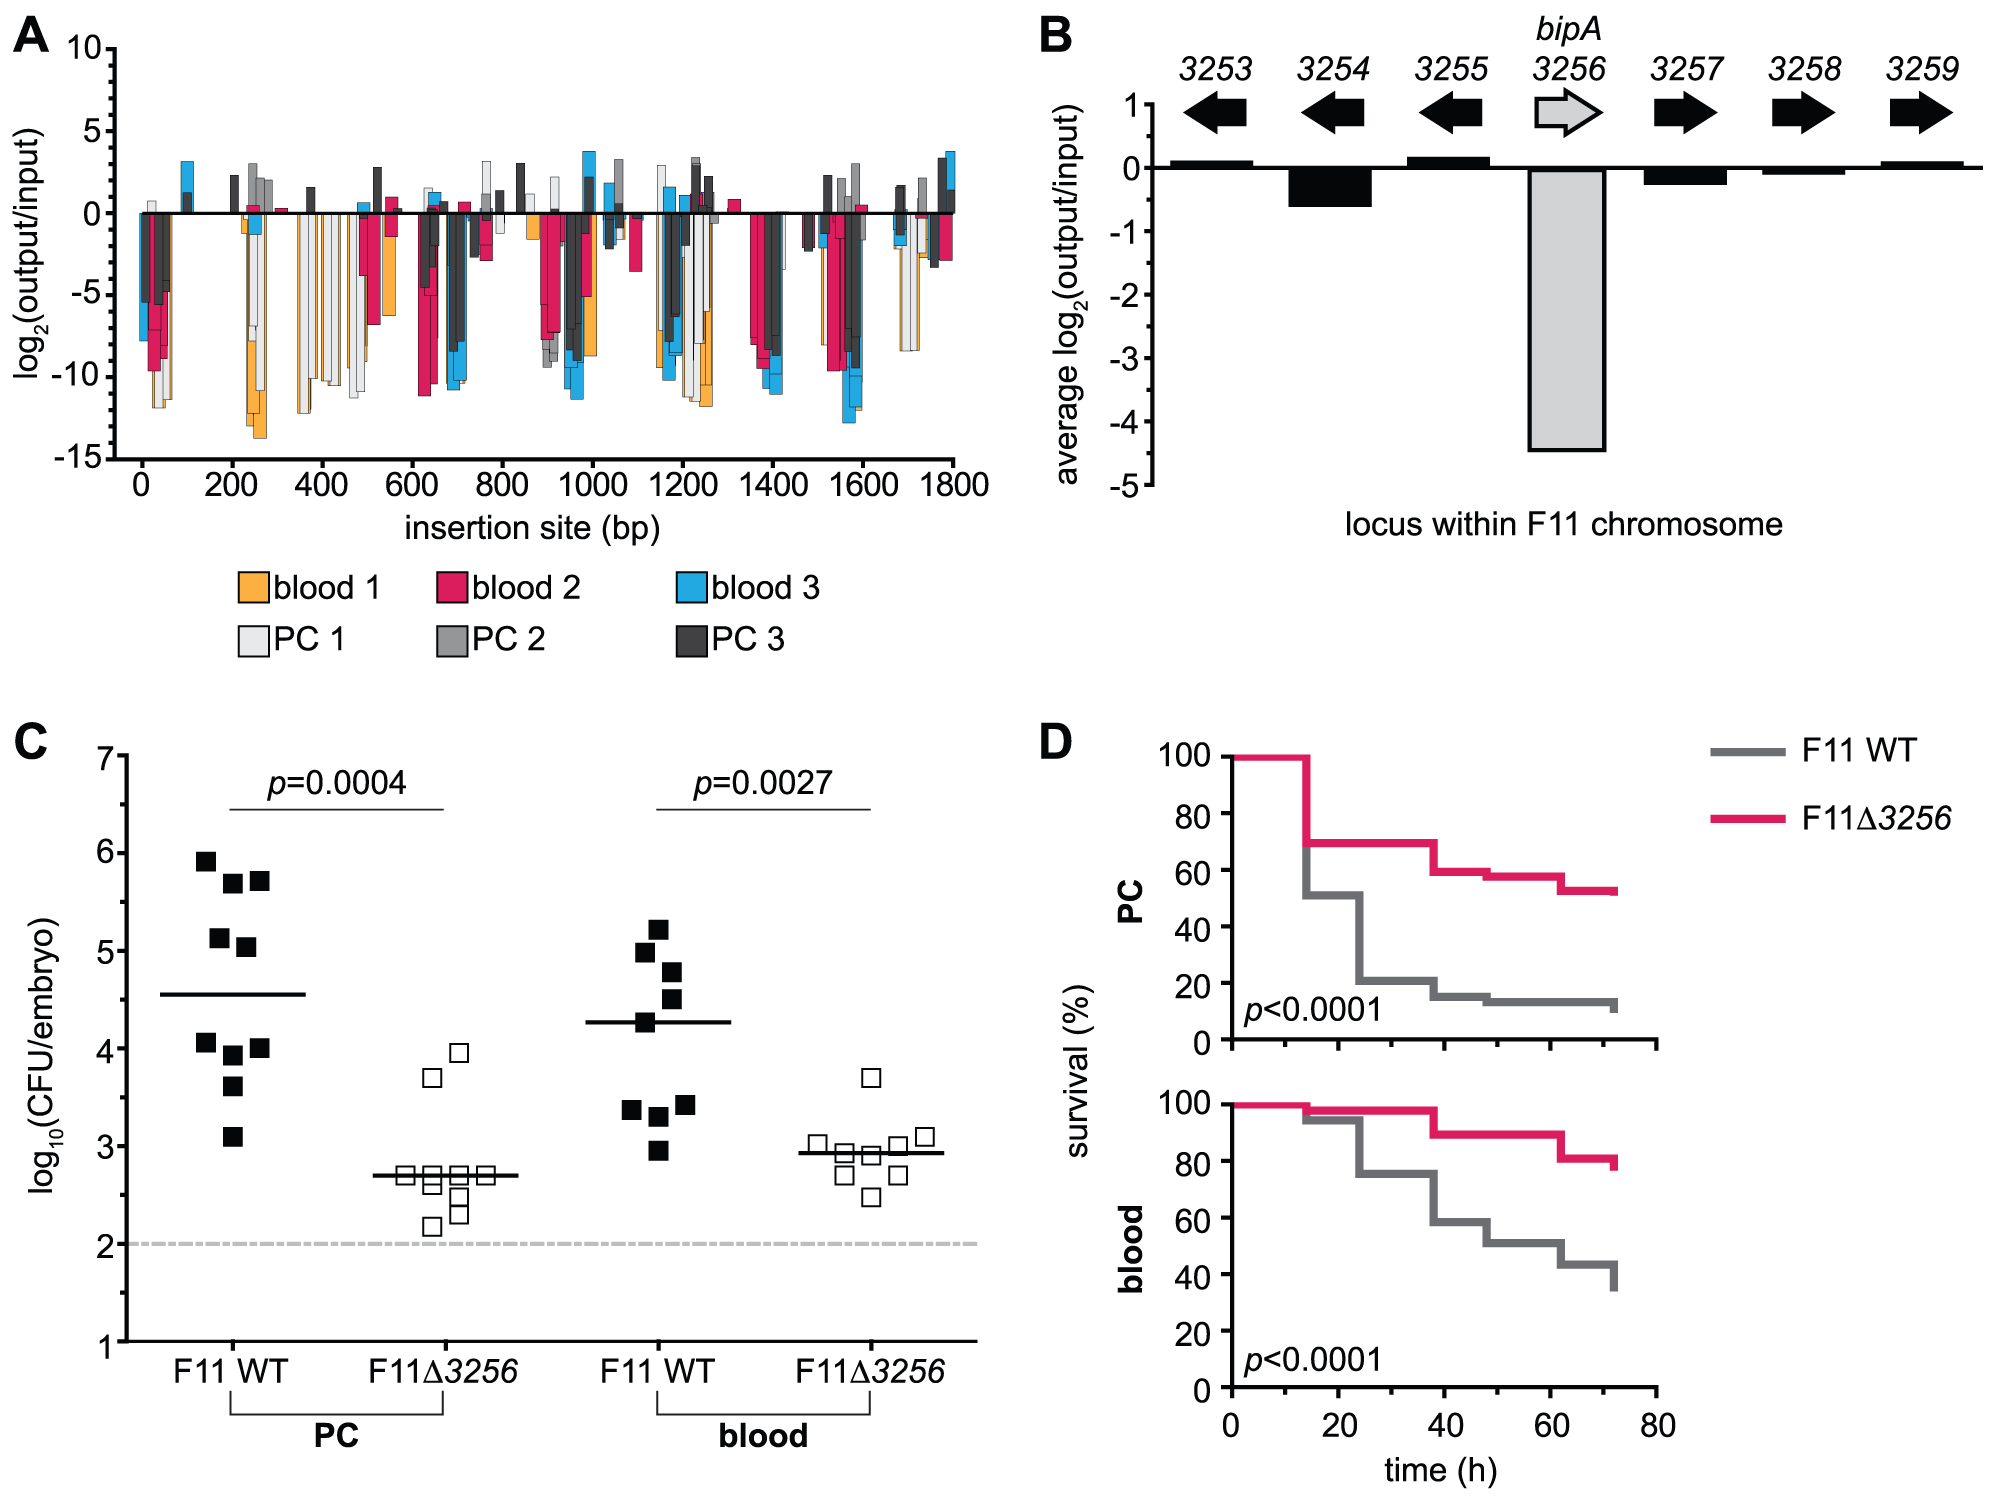 Retrospective deletion of the candidate gene <i>EcF11_3256/bipA</i> confirms Tn-seq as a useful tool for the identification of loci required for fitness and virulence.